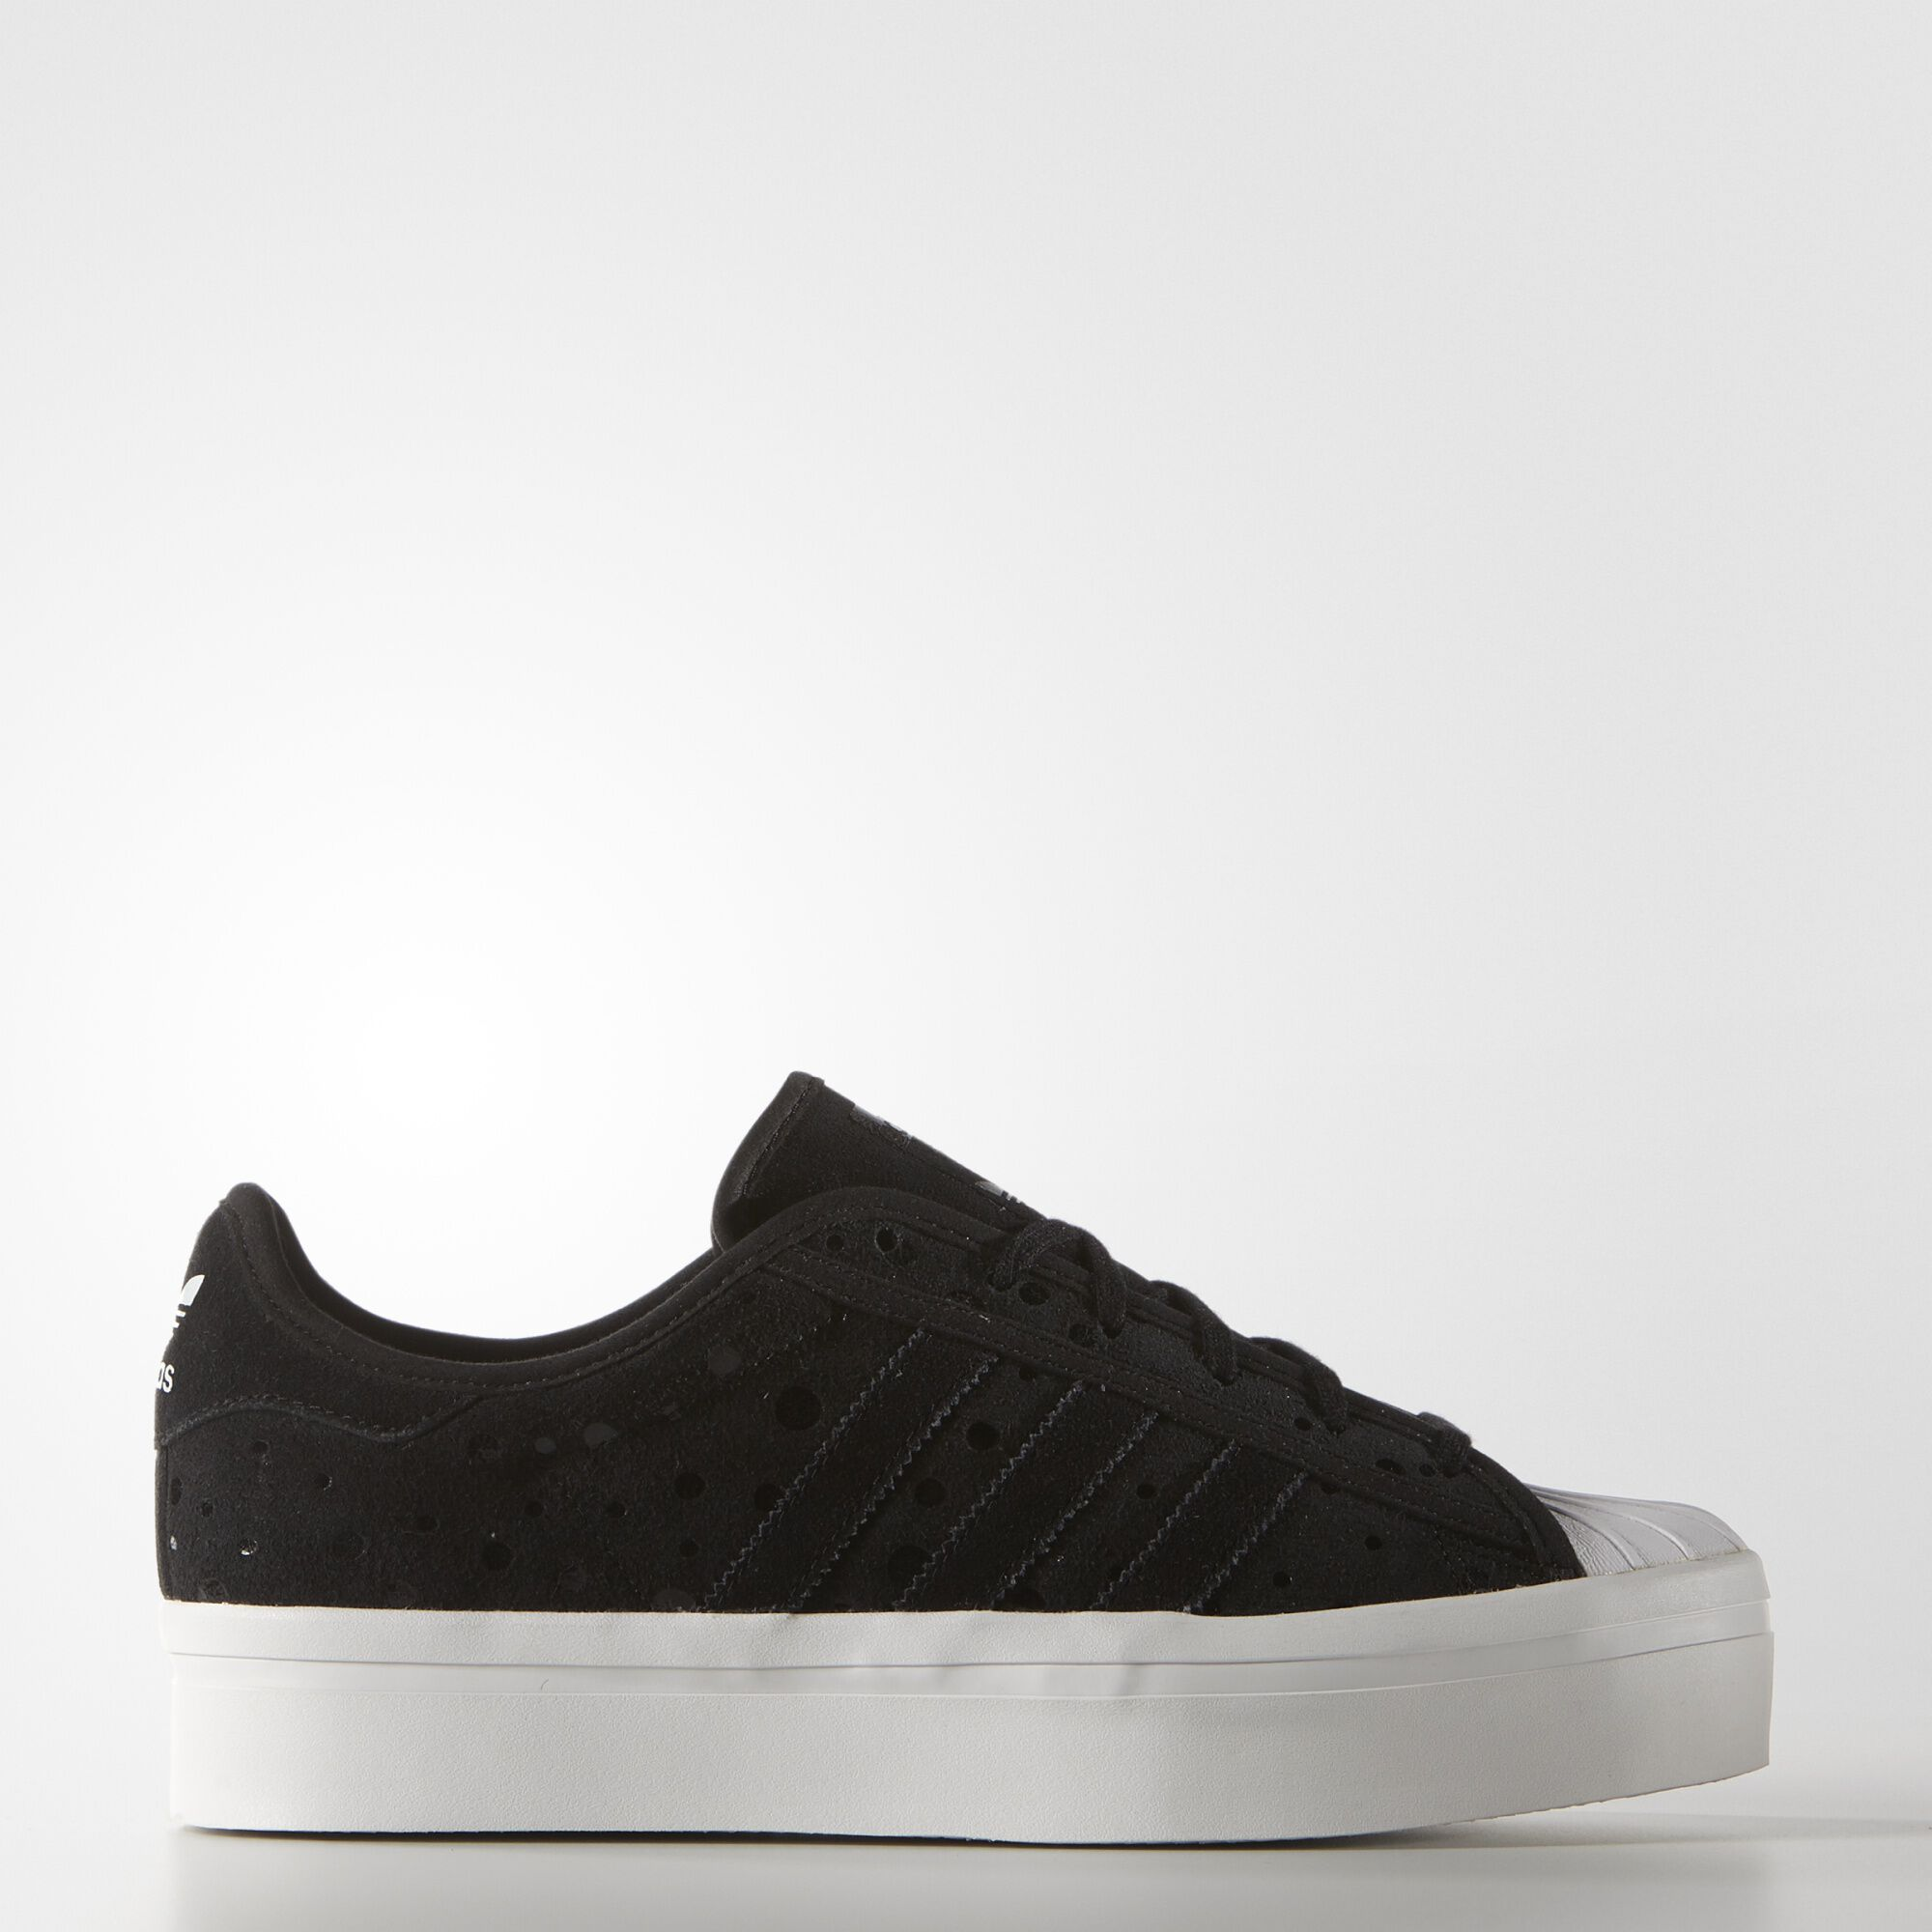 Adidas Superstar Mujer Rize